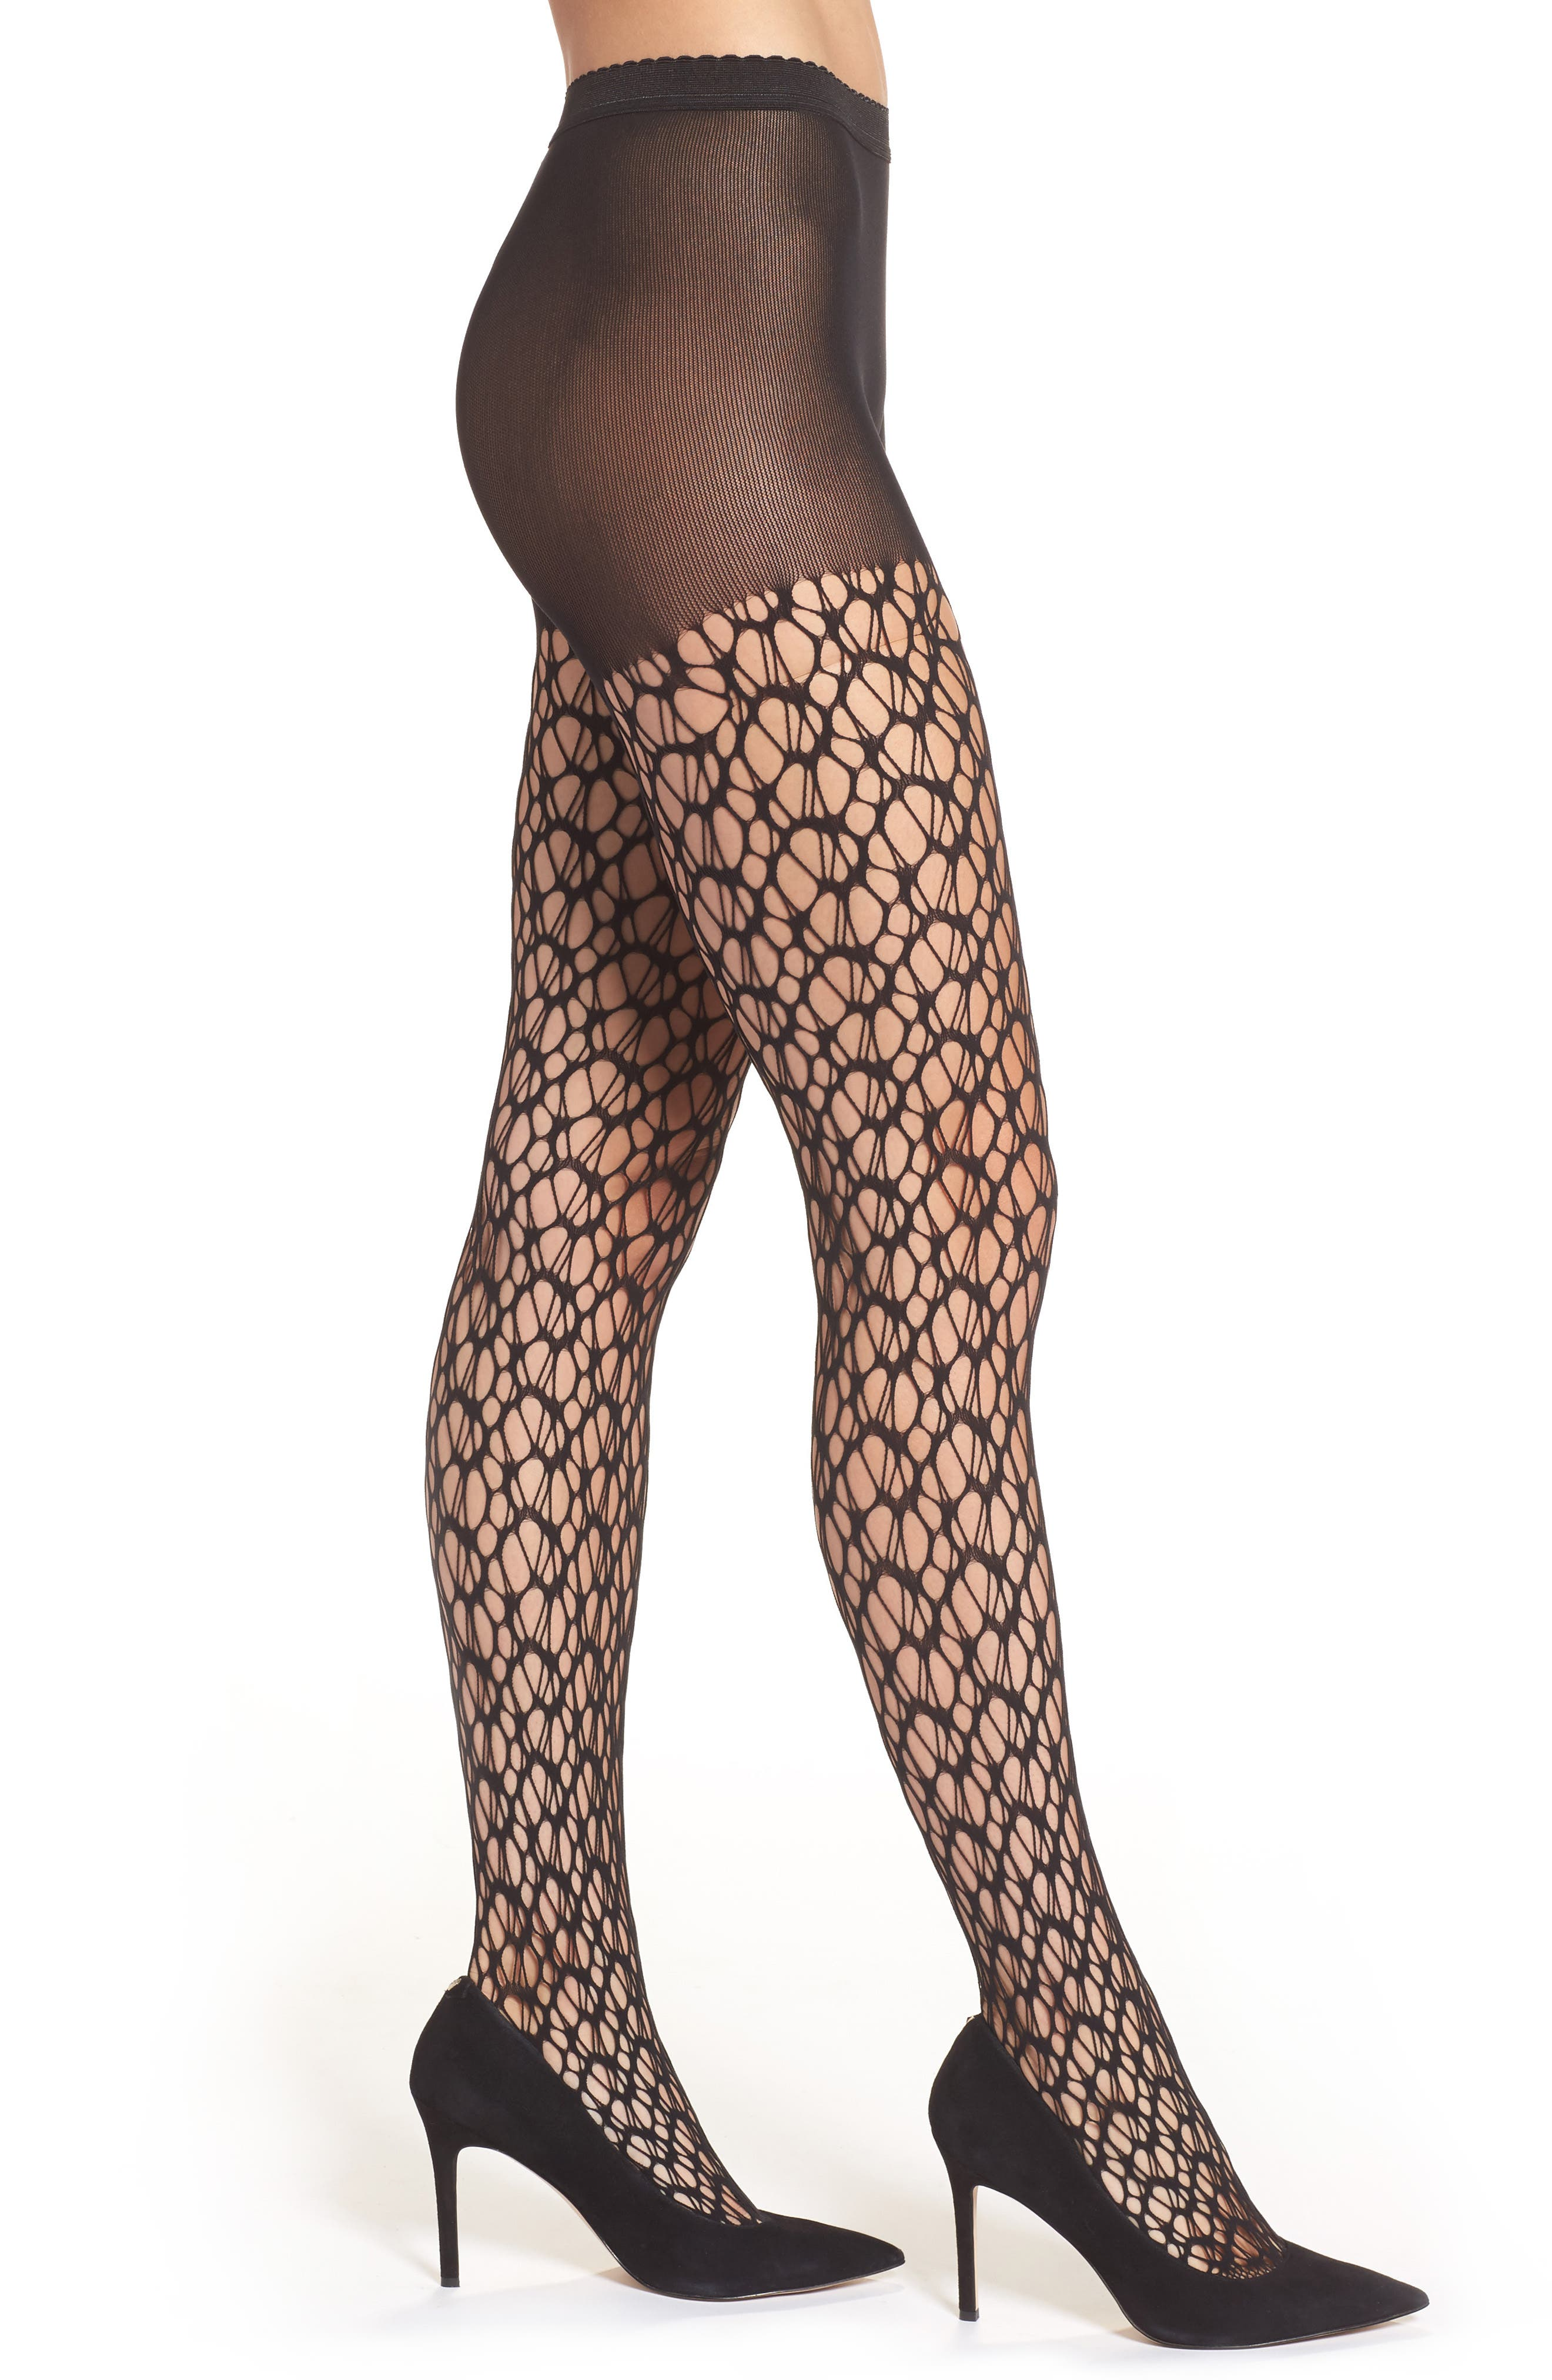 Wolford Net Tights